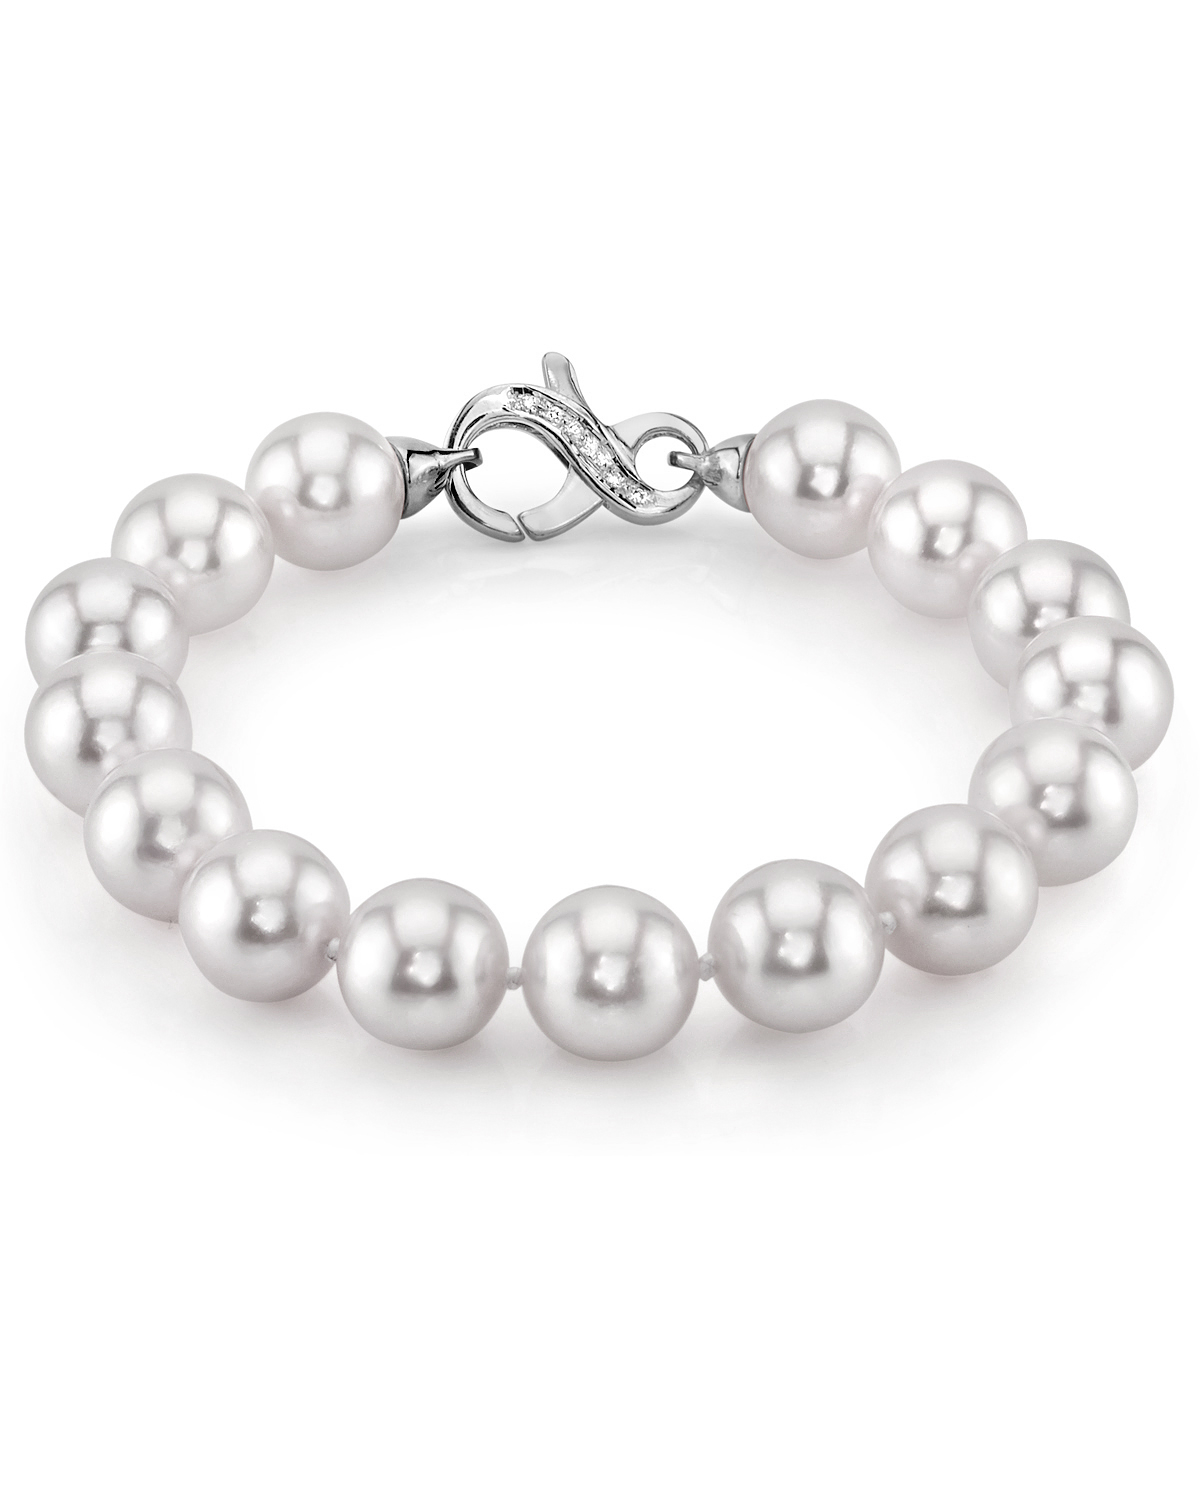 10-11mm White South Sea Pearl Bracelet - AAAA Quality